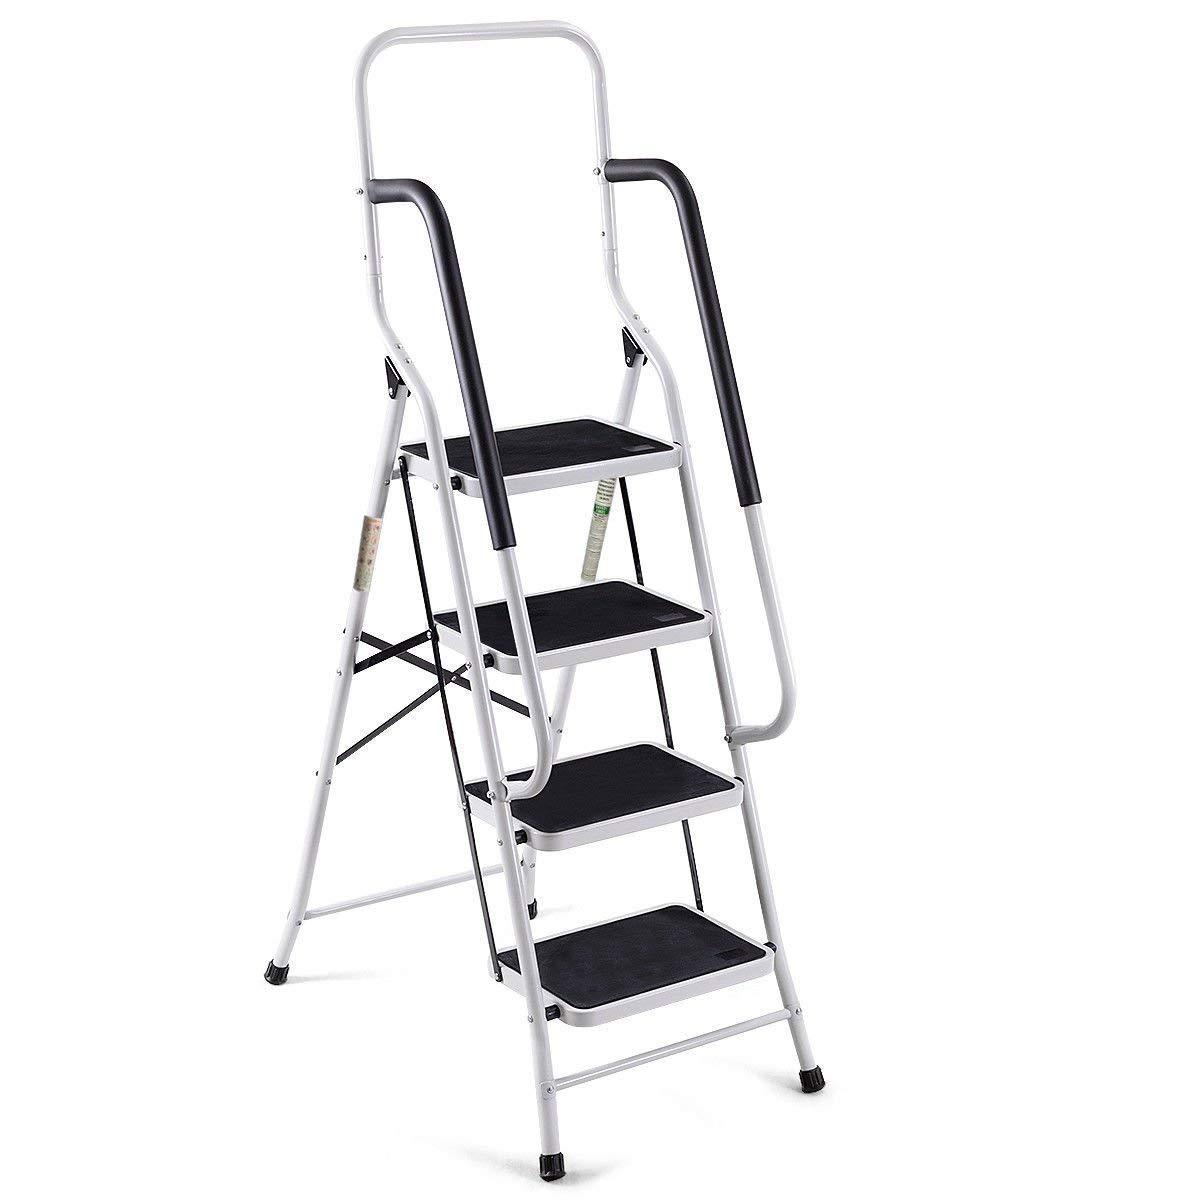 Giantex 2 in 1 Non-Slip Step Ladder Folding Stool w/Handrails and Tool Pouch Caddy (4 Step Ladder) by Giantex (Image #8)